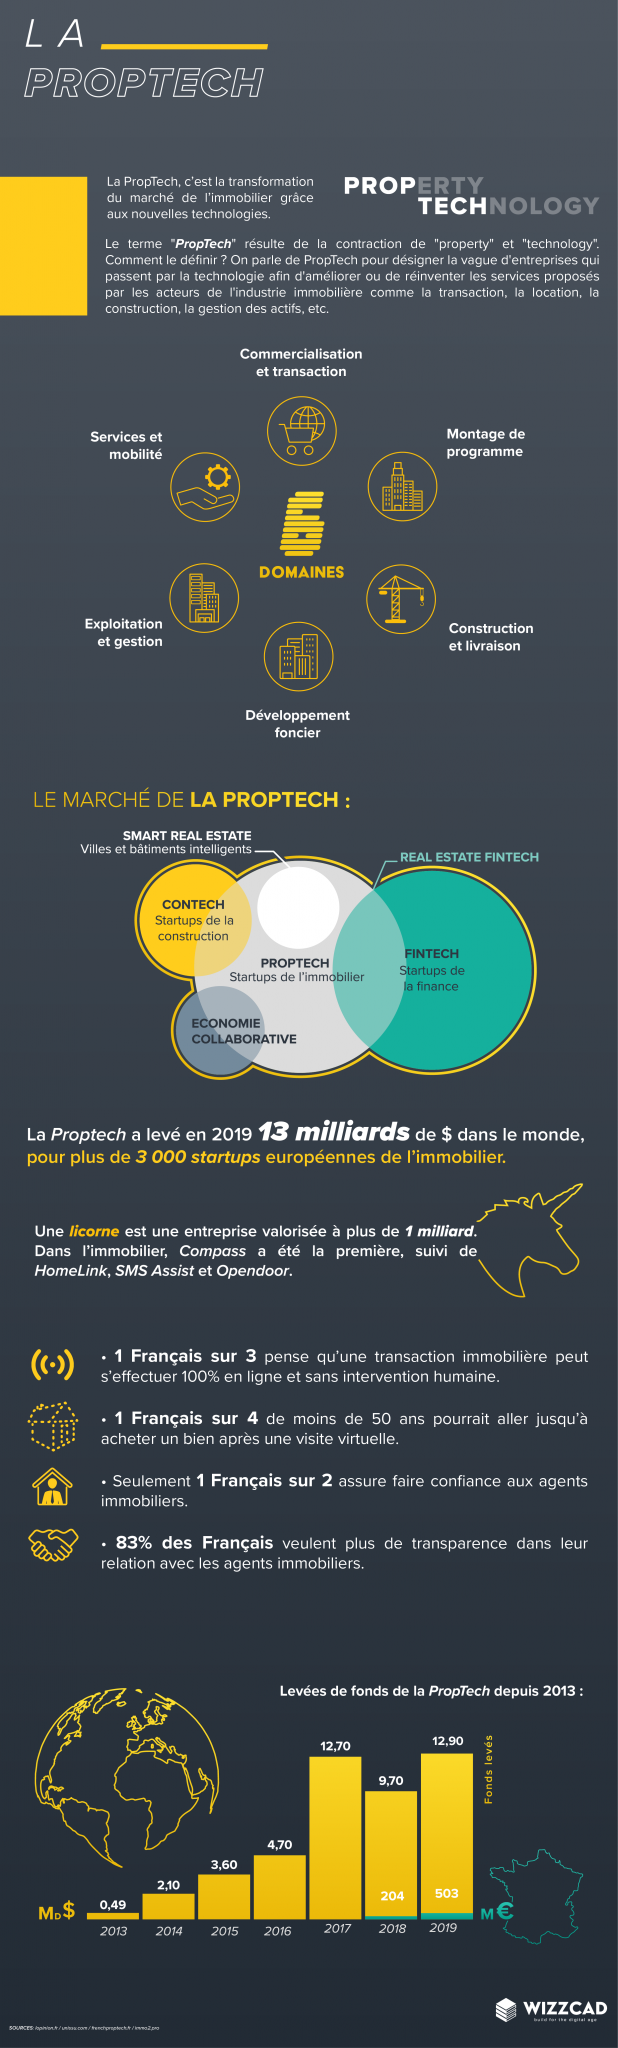 infographie proptech wizzcad